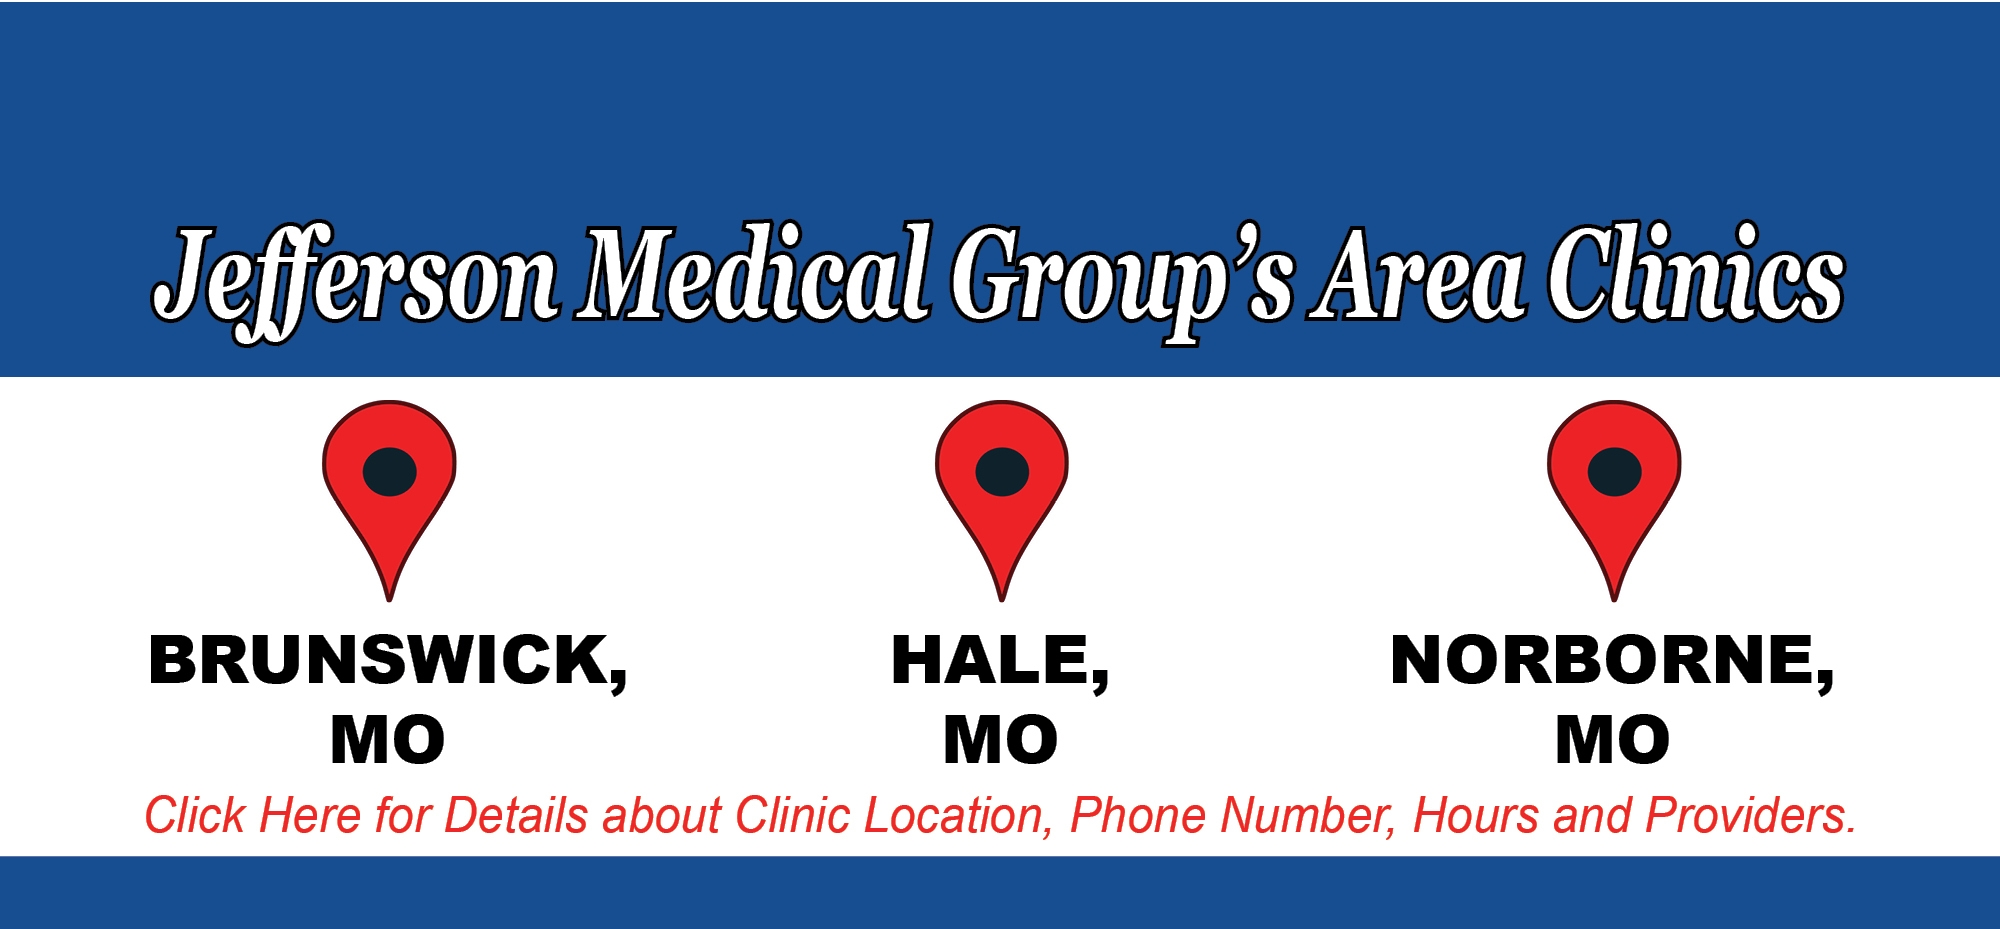 Jefferson Medical Group's Area Clinics